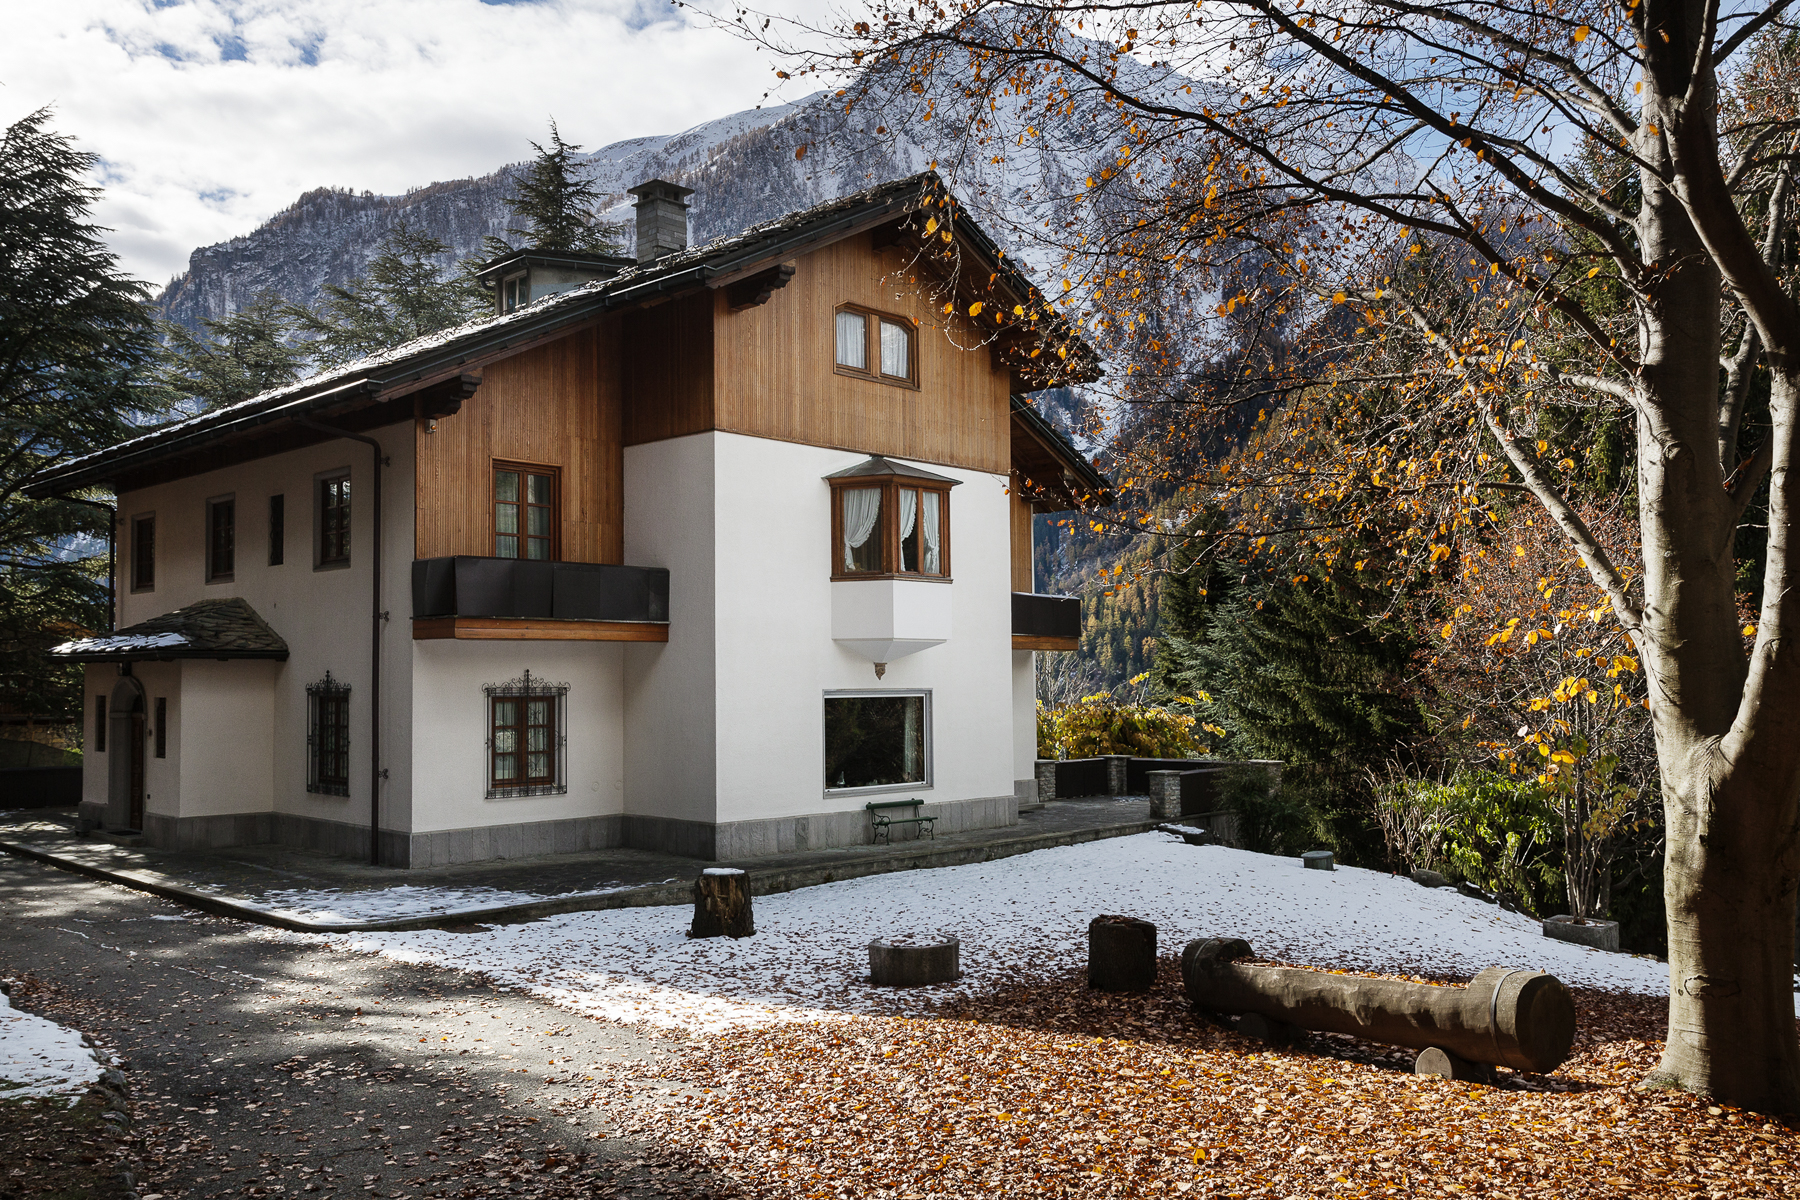 Single Family Home for Sale at Old mansion including more villas in Courmayeur Via Donzelli Courmayeur, Aosta, 11013 Italy